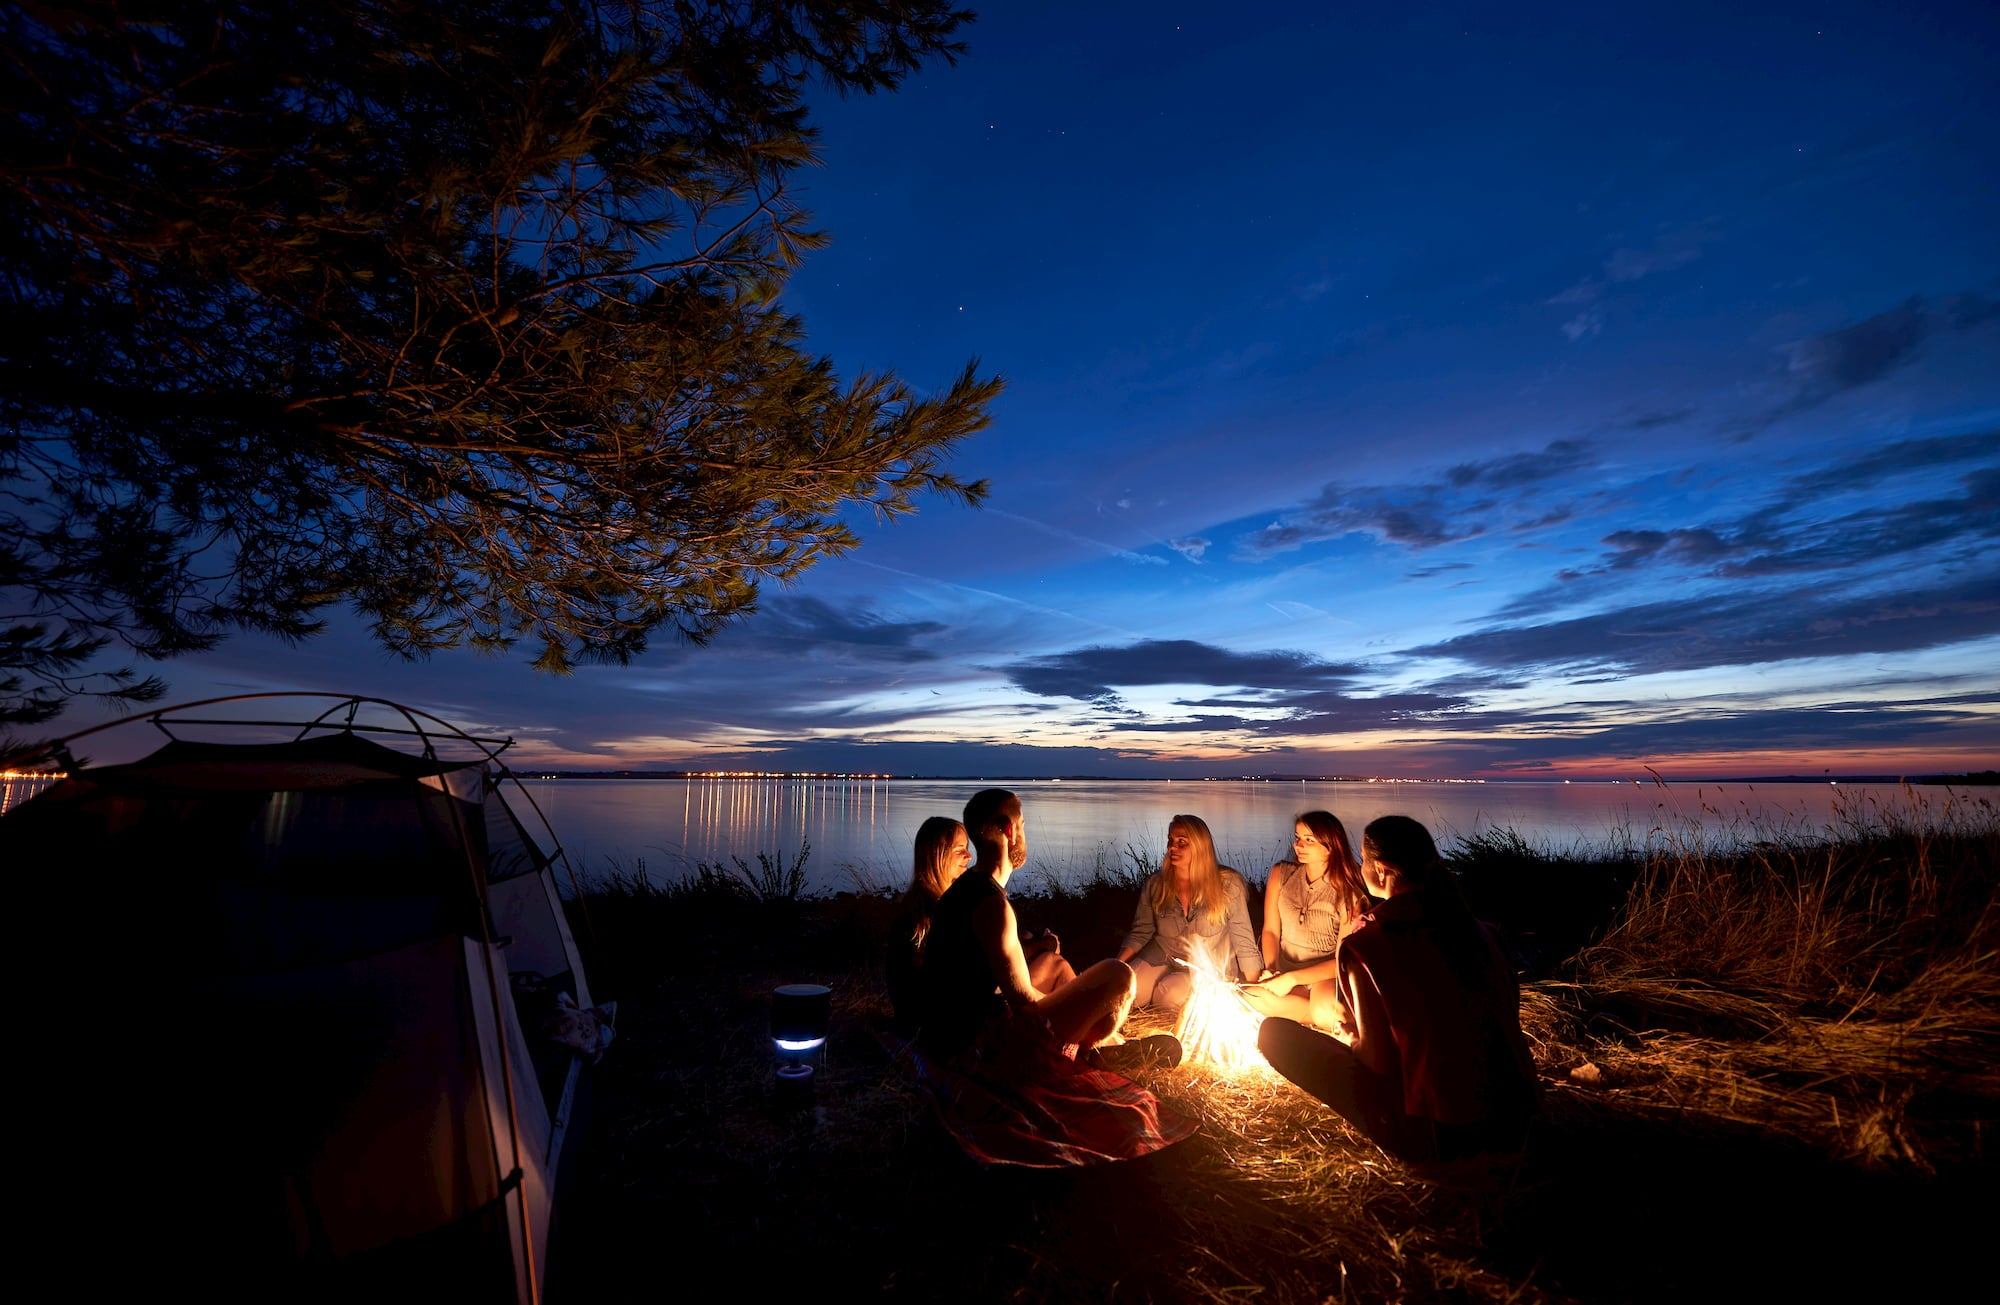 Night summer camping on sea shore. Group of five young tourists sitting on the beach around campfire near tent under beautiful blue evening sky.